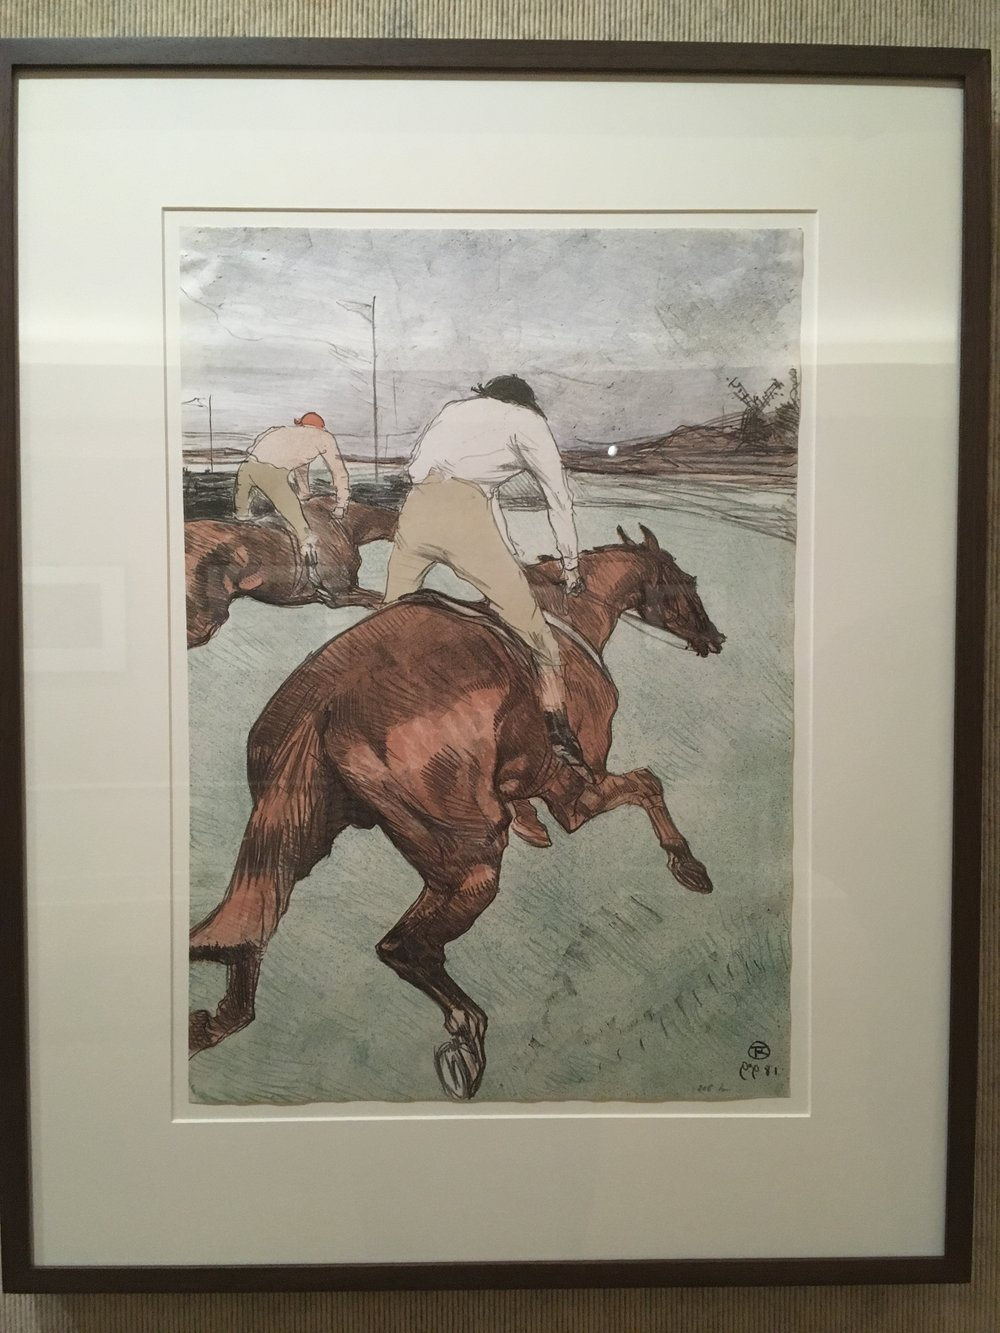 Henri de Toulouse-Lautrec,   Le Jockey (The Jockey)  , 1899, Color lithograph on China Paper